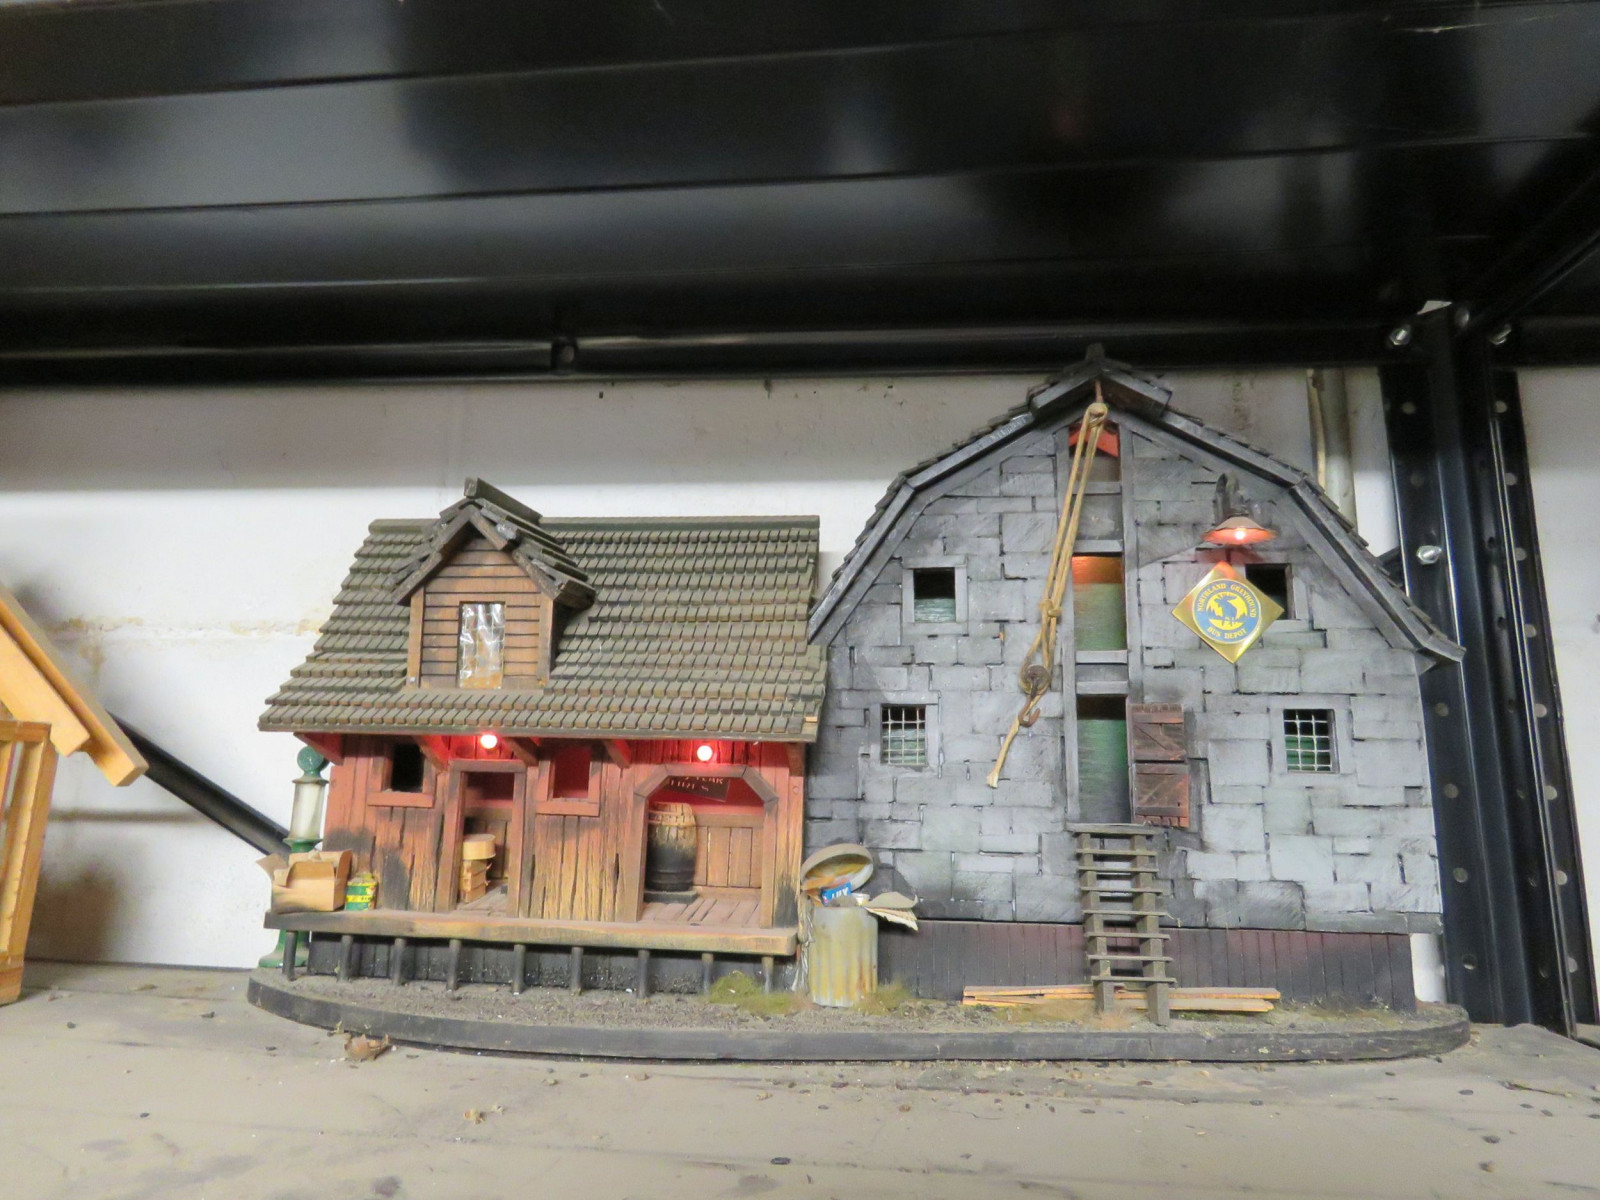 Tire Shop Diorama with Vintage Cast Iron Toys - Image 1